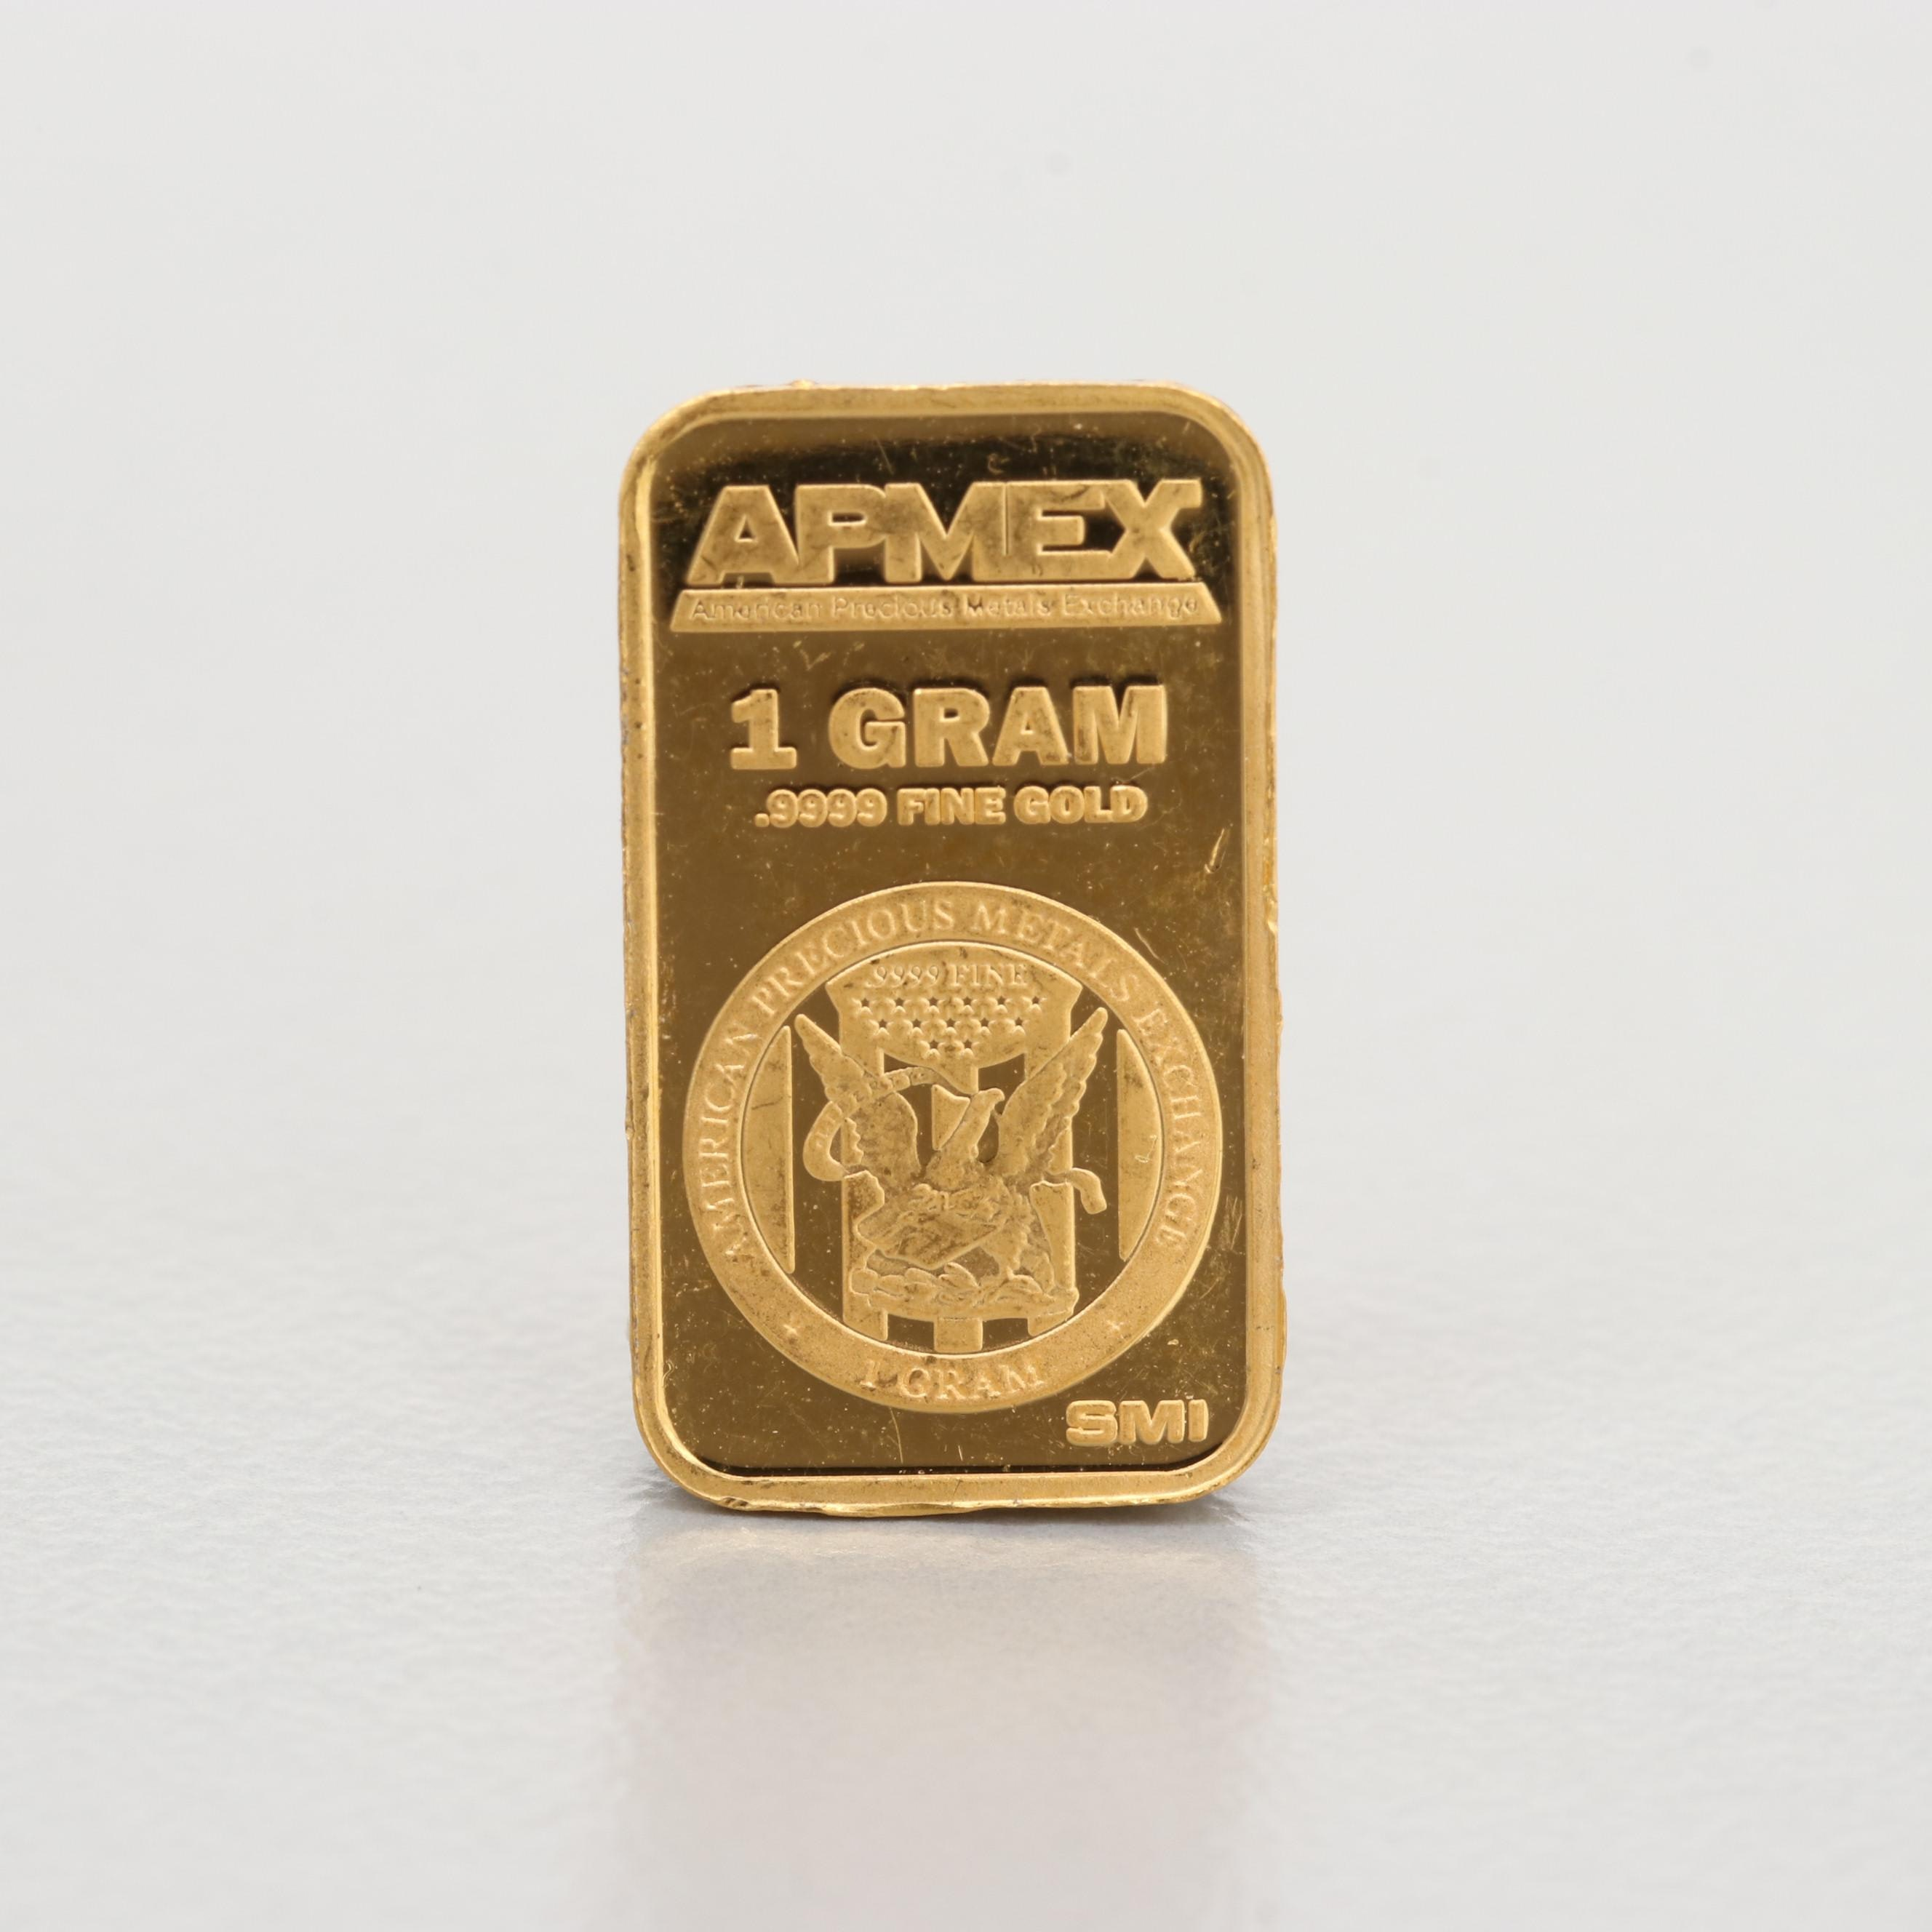 24K Gold APMEX 1 Gram Gold Bar